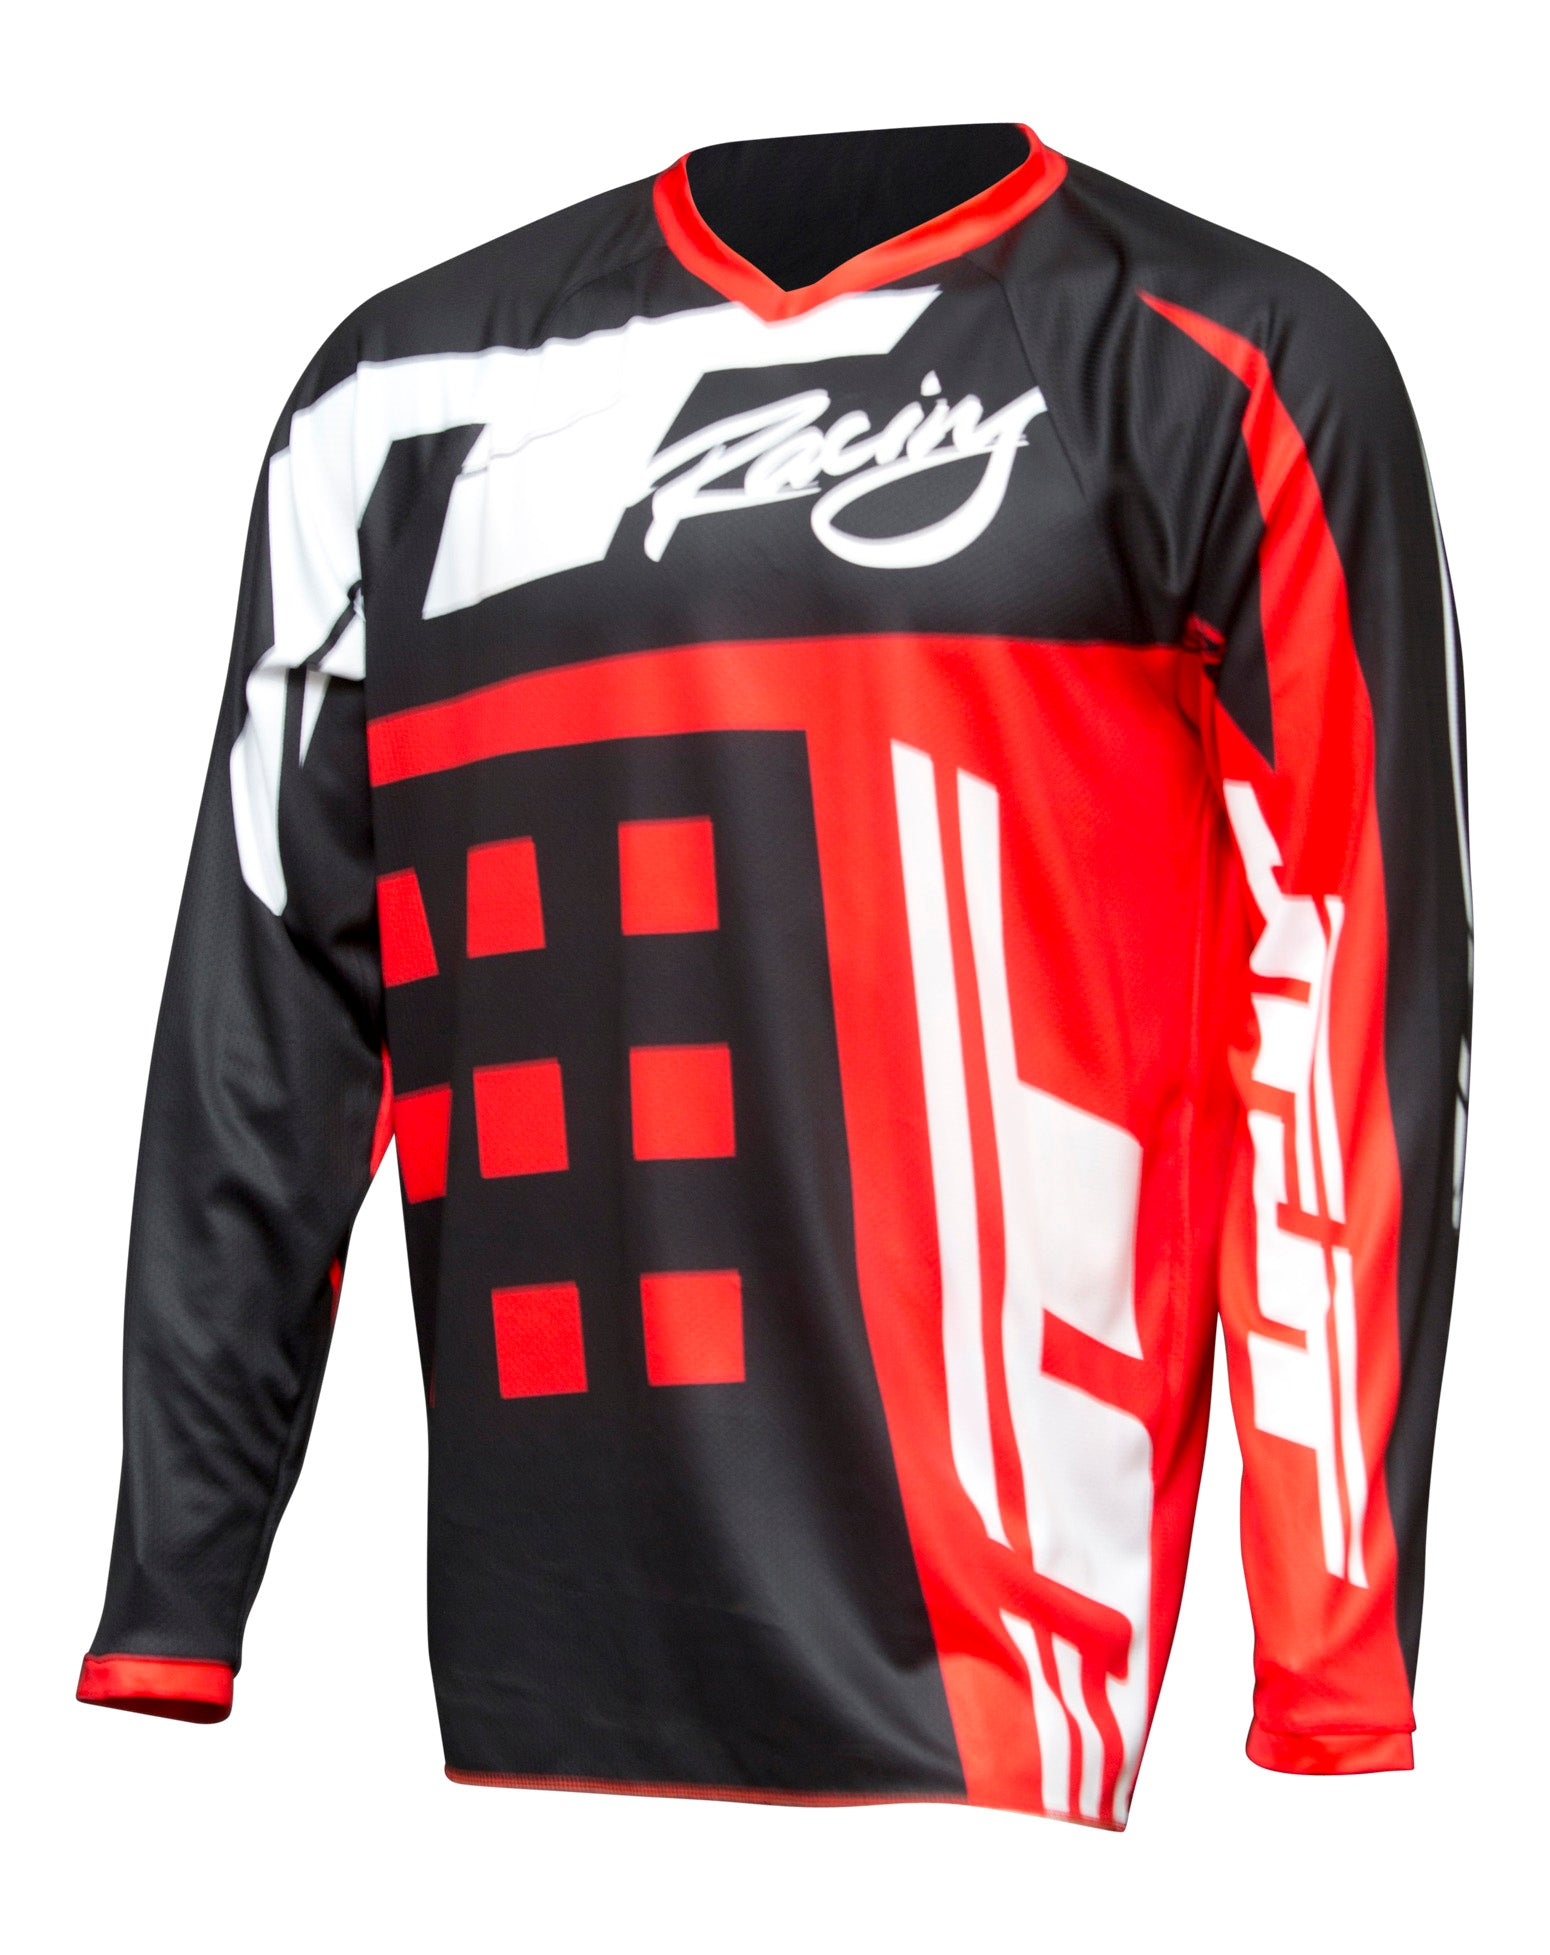 JT RACING USA-Flex-ExBox Jersey, Red/Black